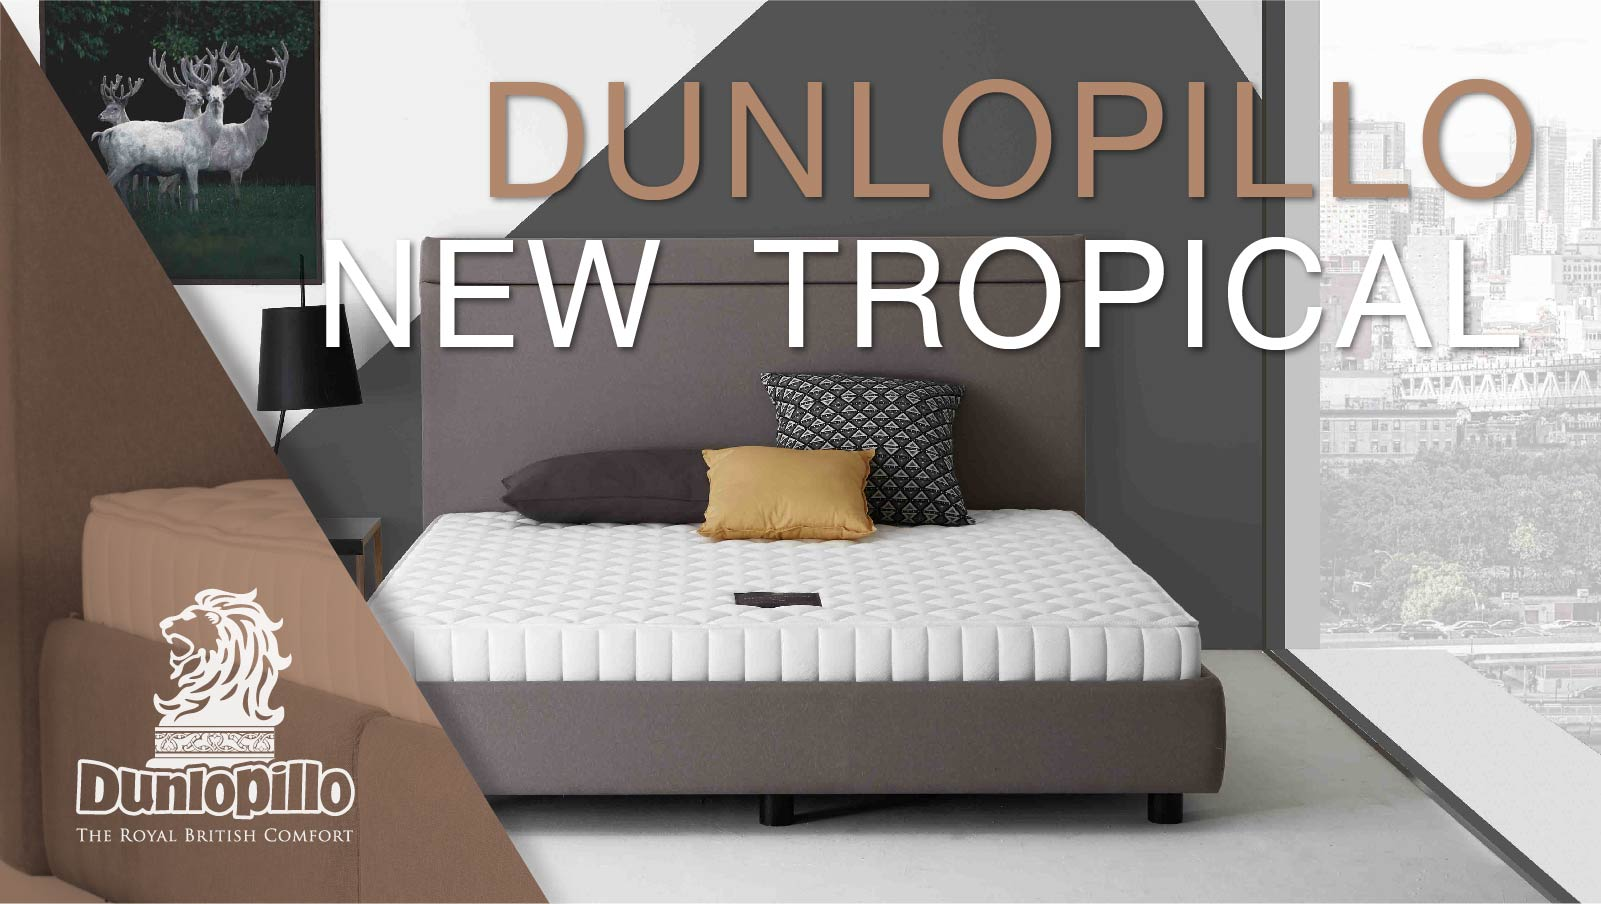 Dunlopillo Mattress - New Tropical